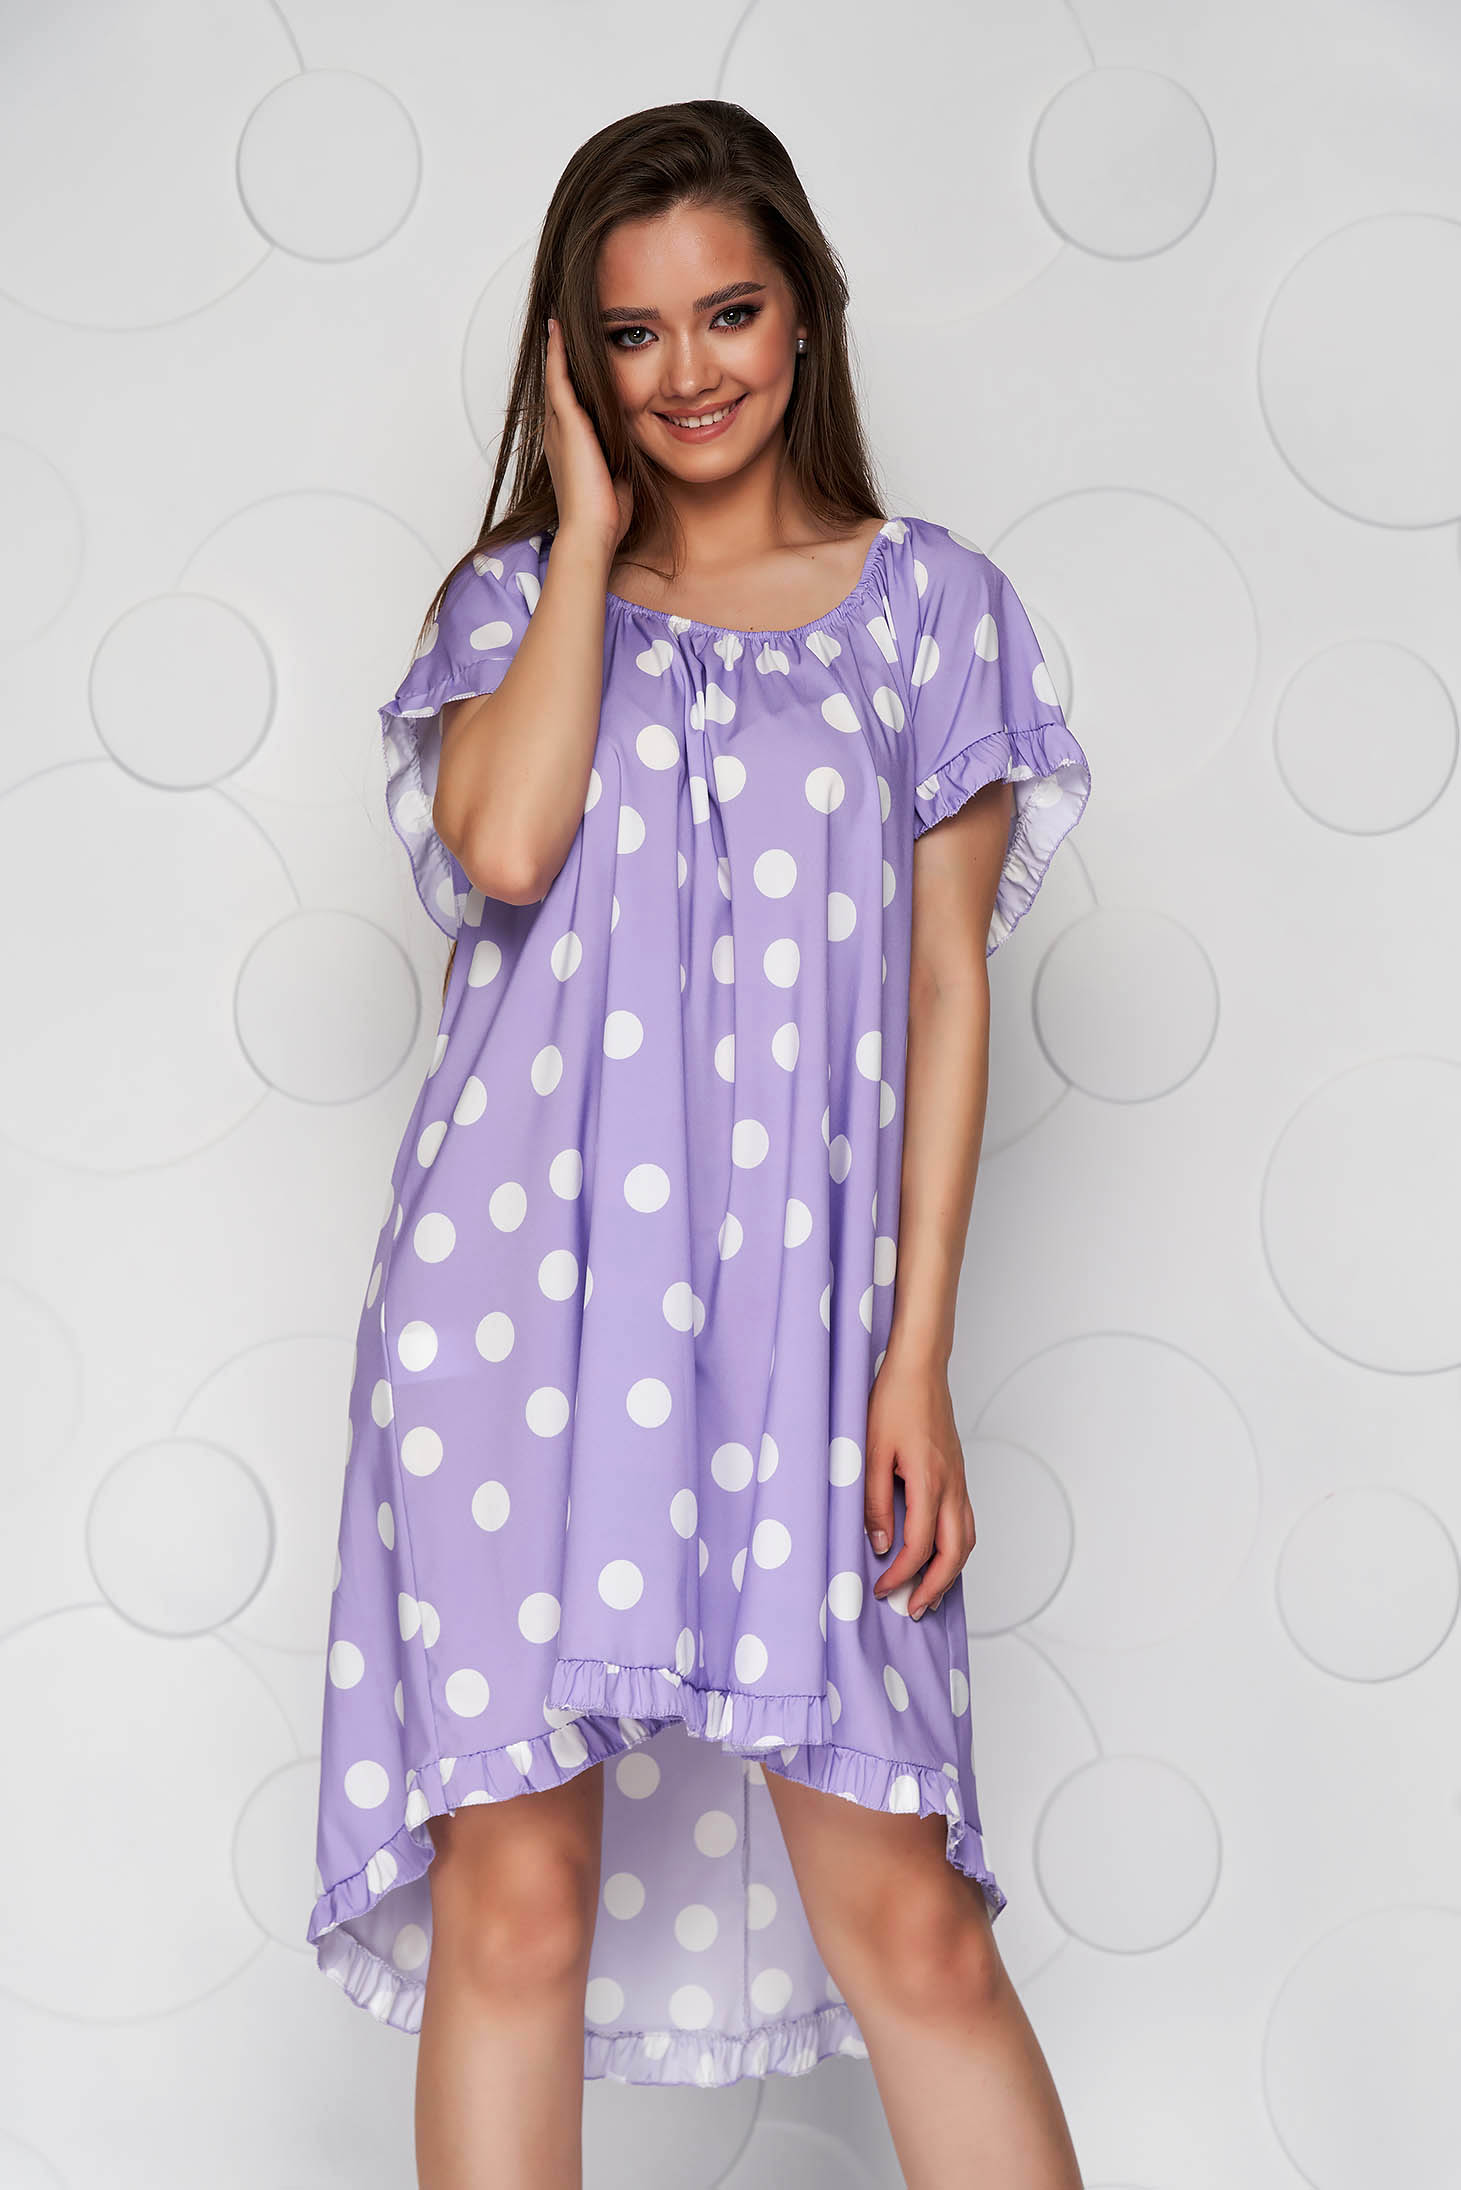 Lila dress dots print loose fit from elastic fabric elastic cleavage